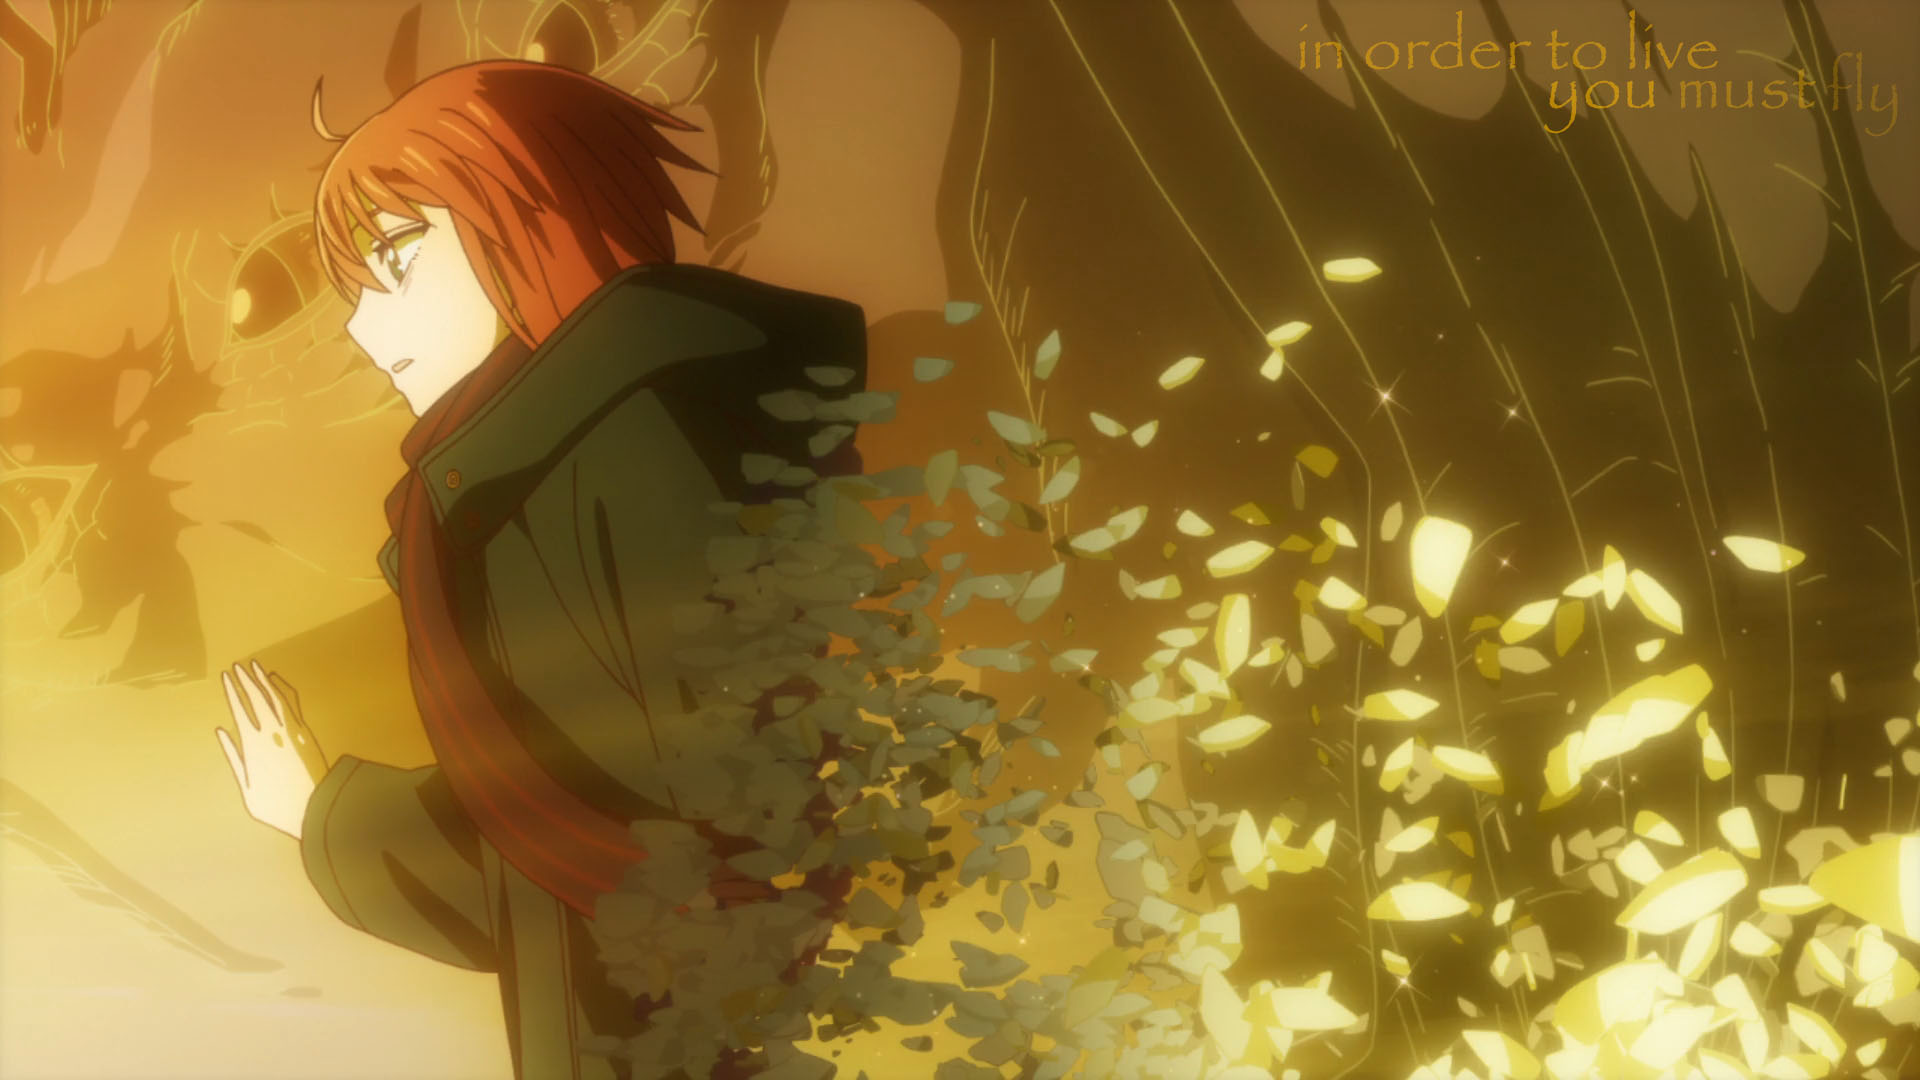 Download Ancient Magus Bride Wallpaper Hd Backgrounds